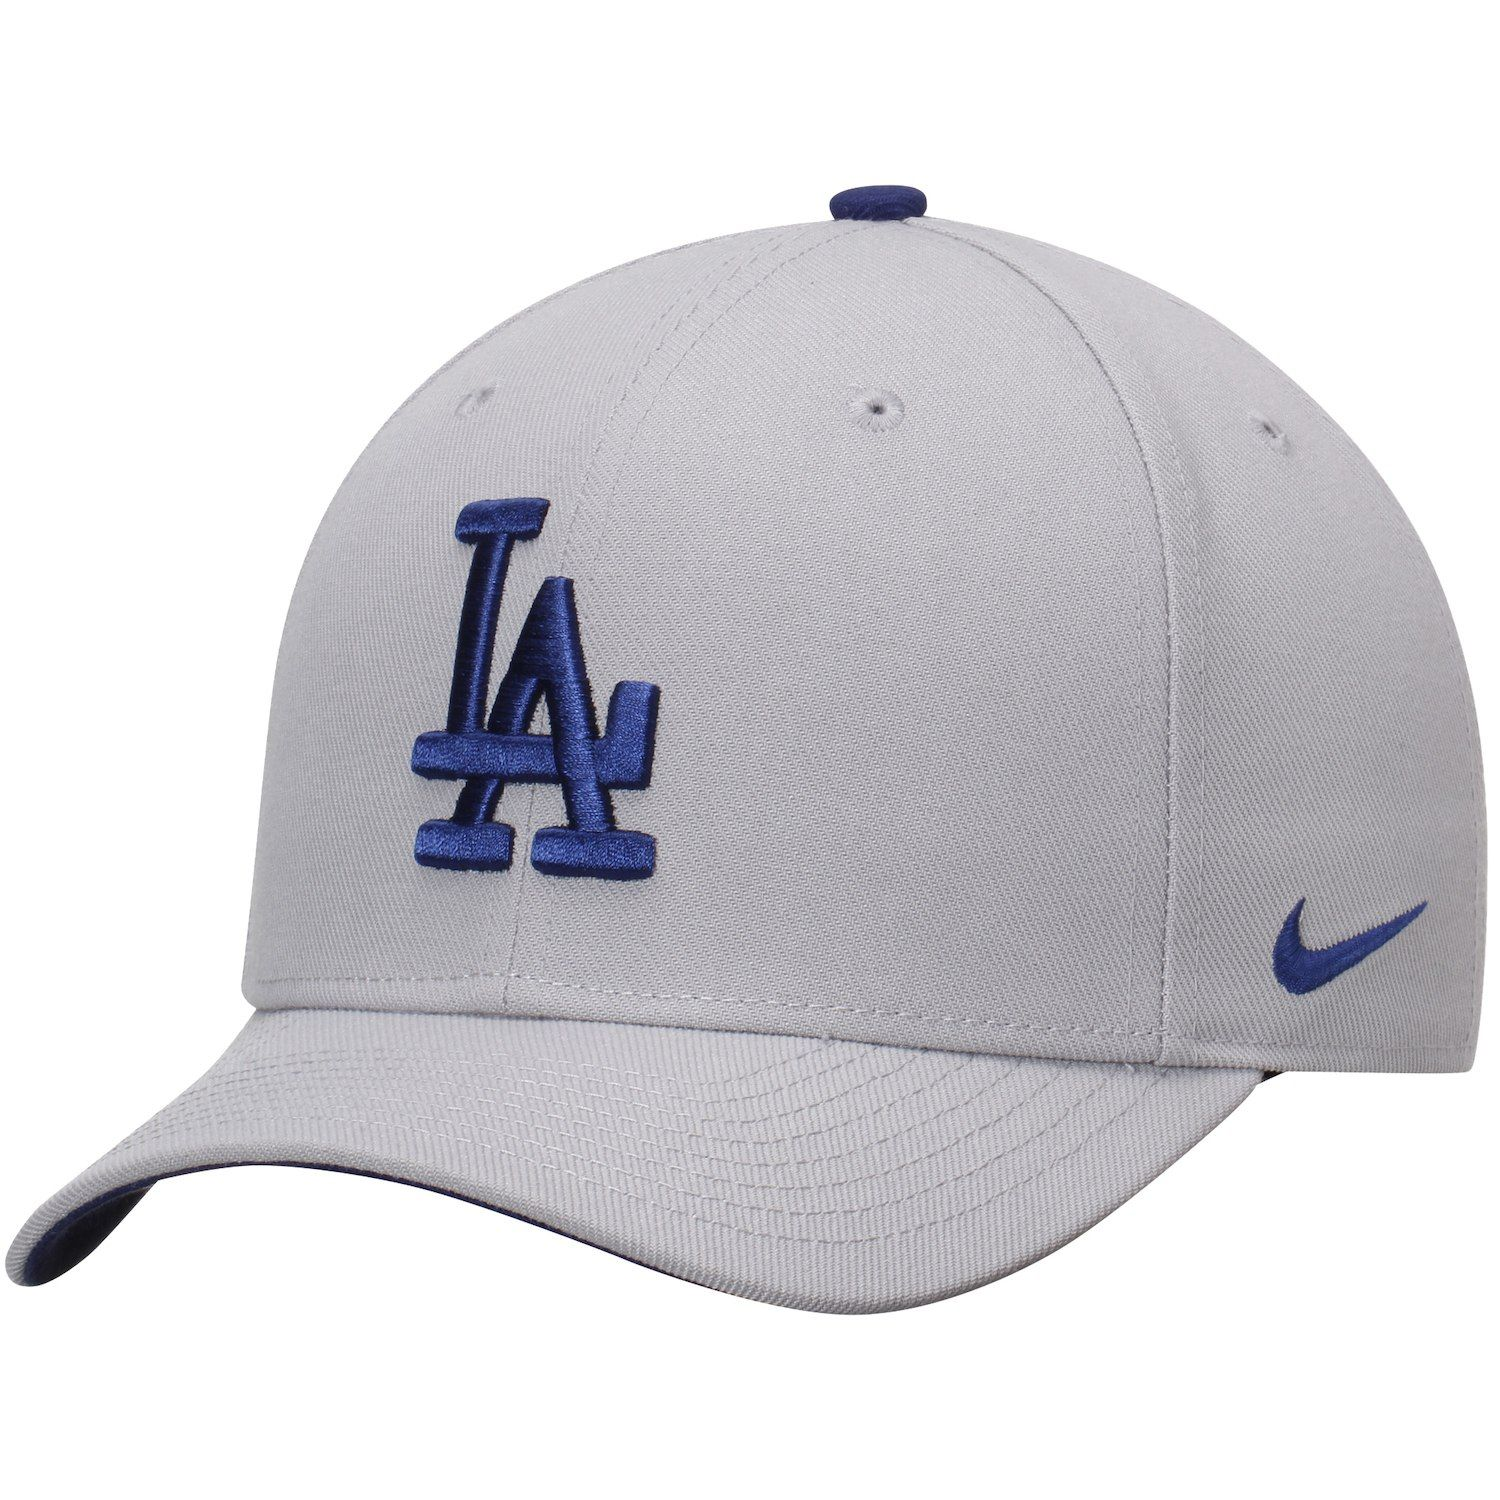 online store 5eb21 96400 Men s Nike Gray Los Angeles Dodgers Wool Classic Adjustable Performance Hat